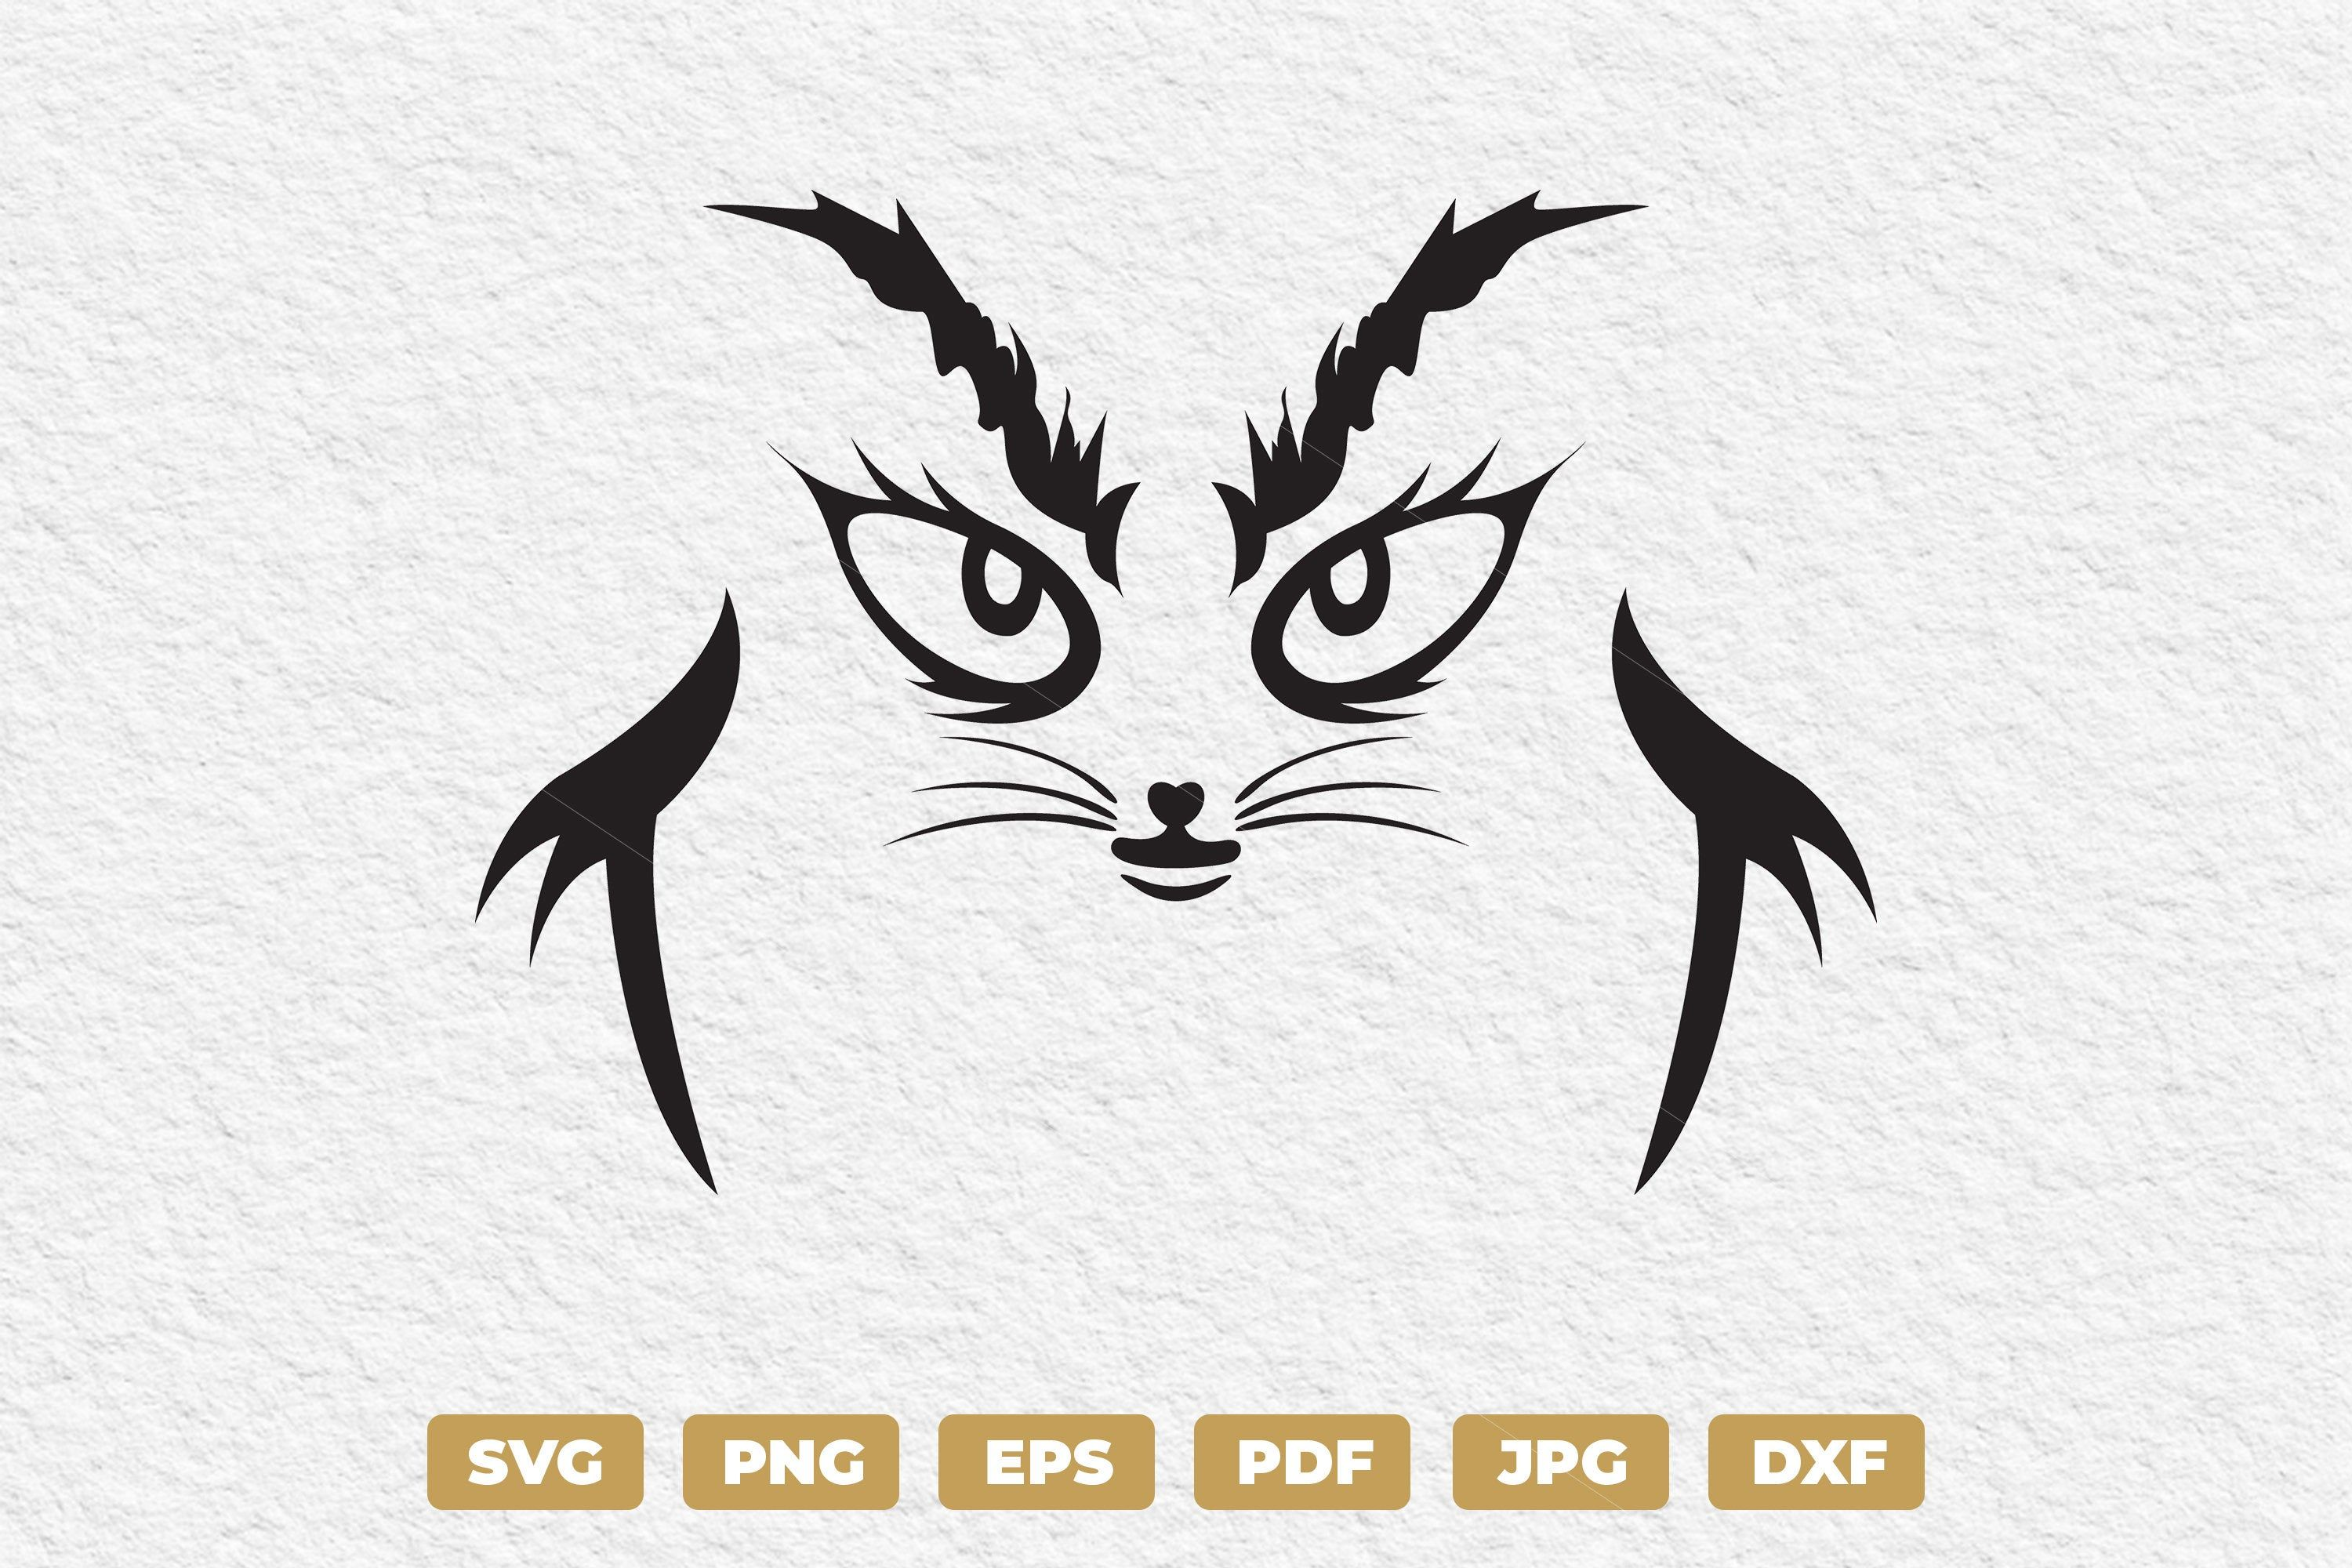 Cat Expression Svg Funny Cat Face Clipart Angry Cat Face Etsy Funny Cat Faces Cat Expressions Cat Face